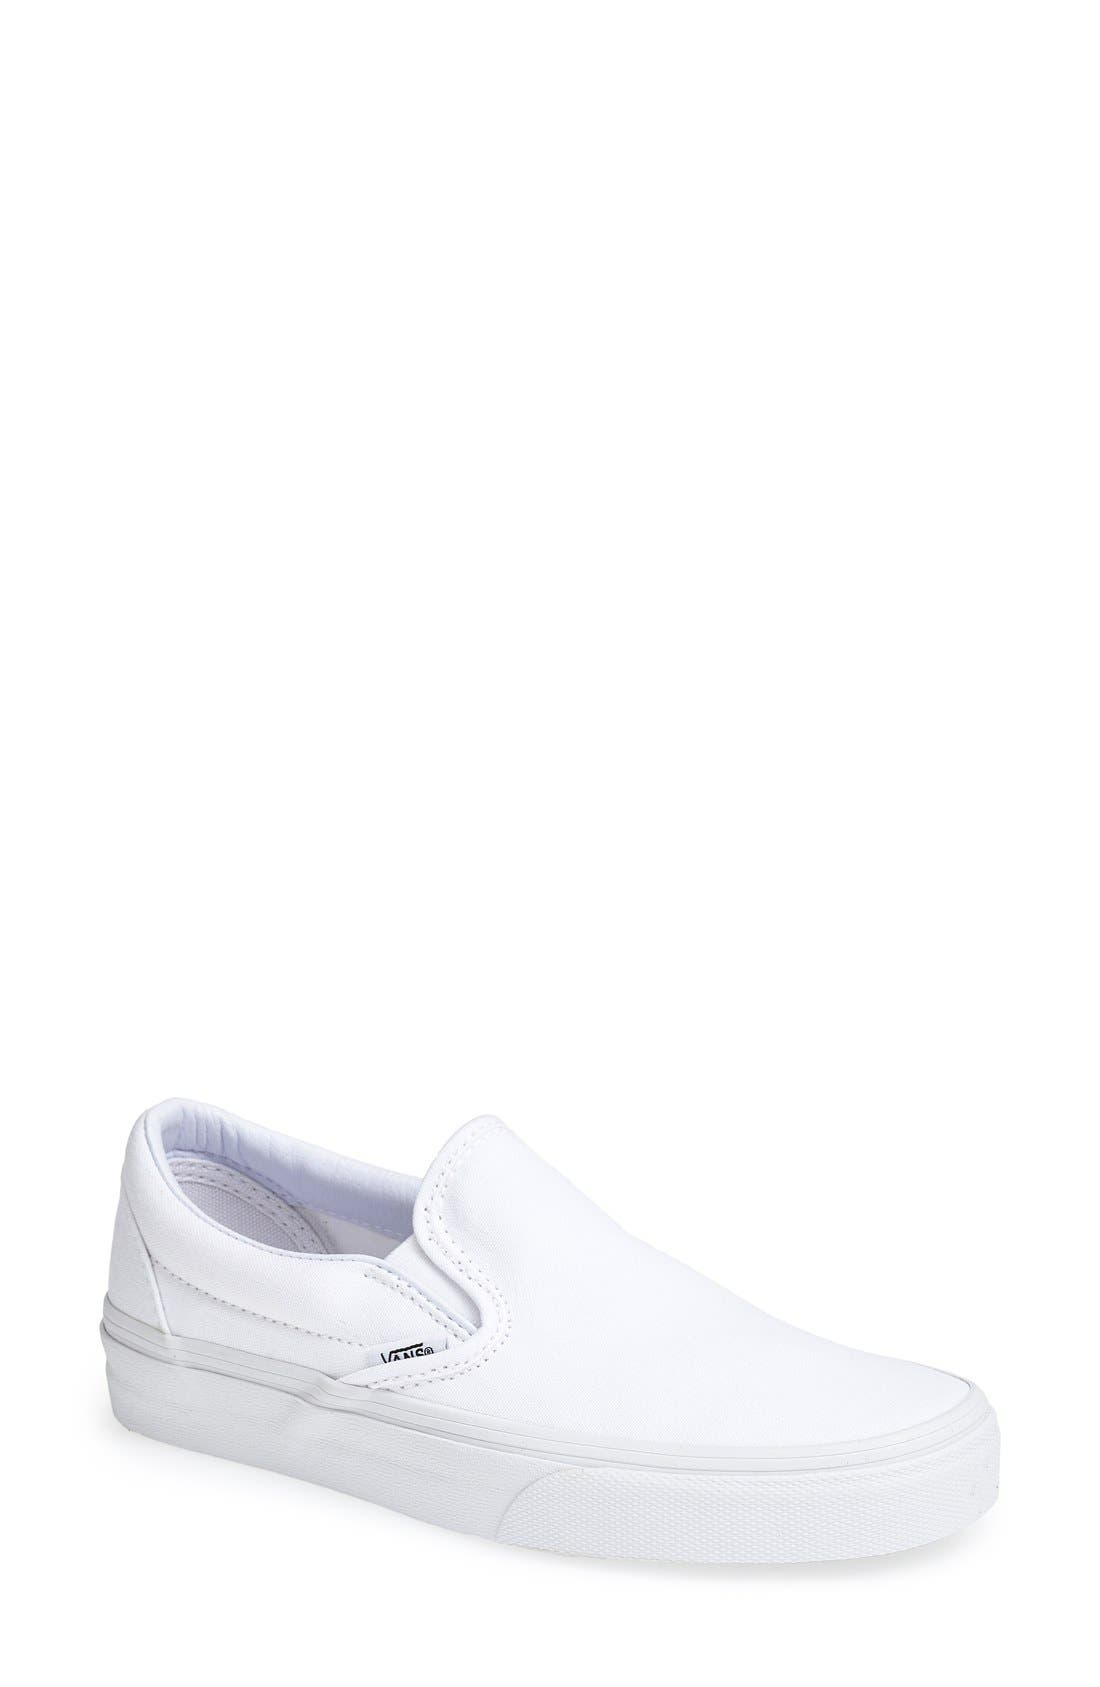 vans shoes for women white